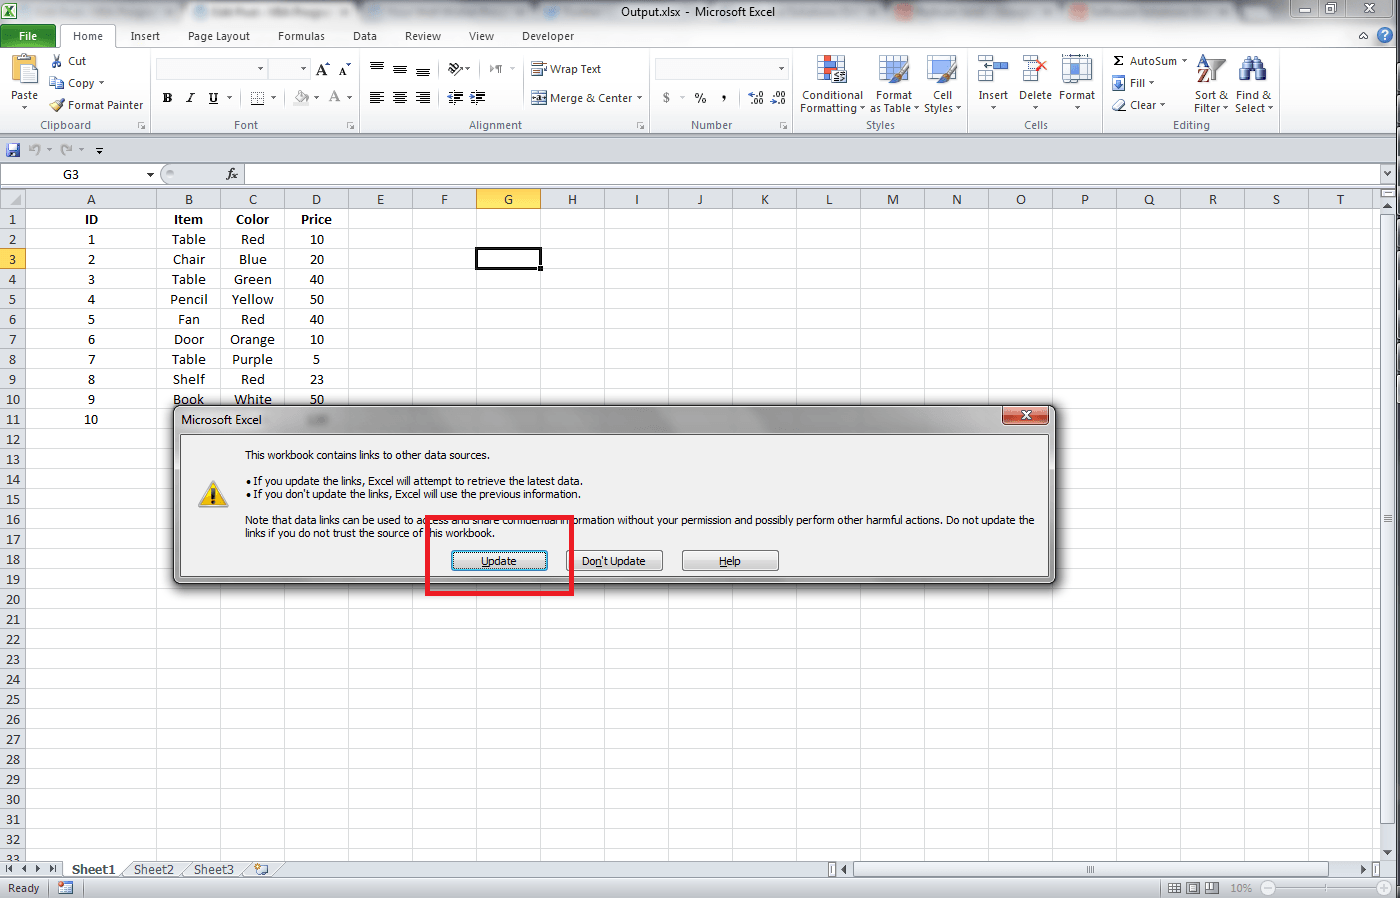 Workbooks vba workbooks.open : Excel, Getting Data From Another Workbook Through Links - VBA and ...